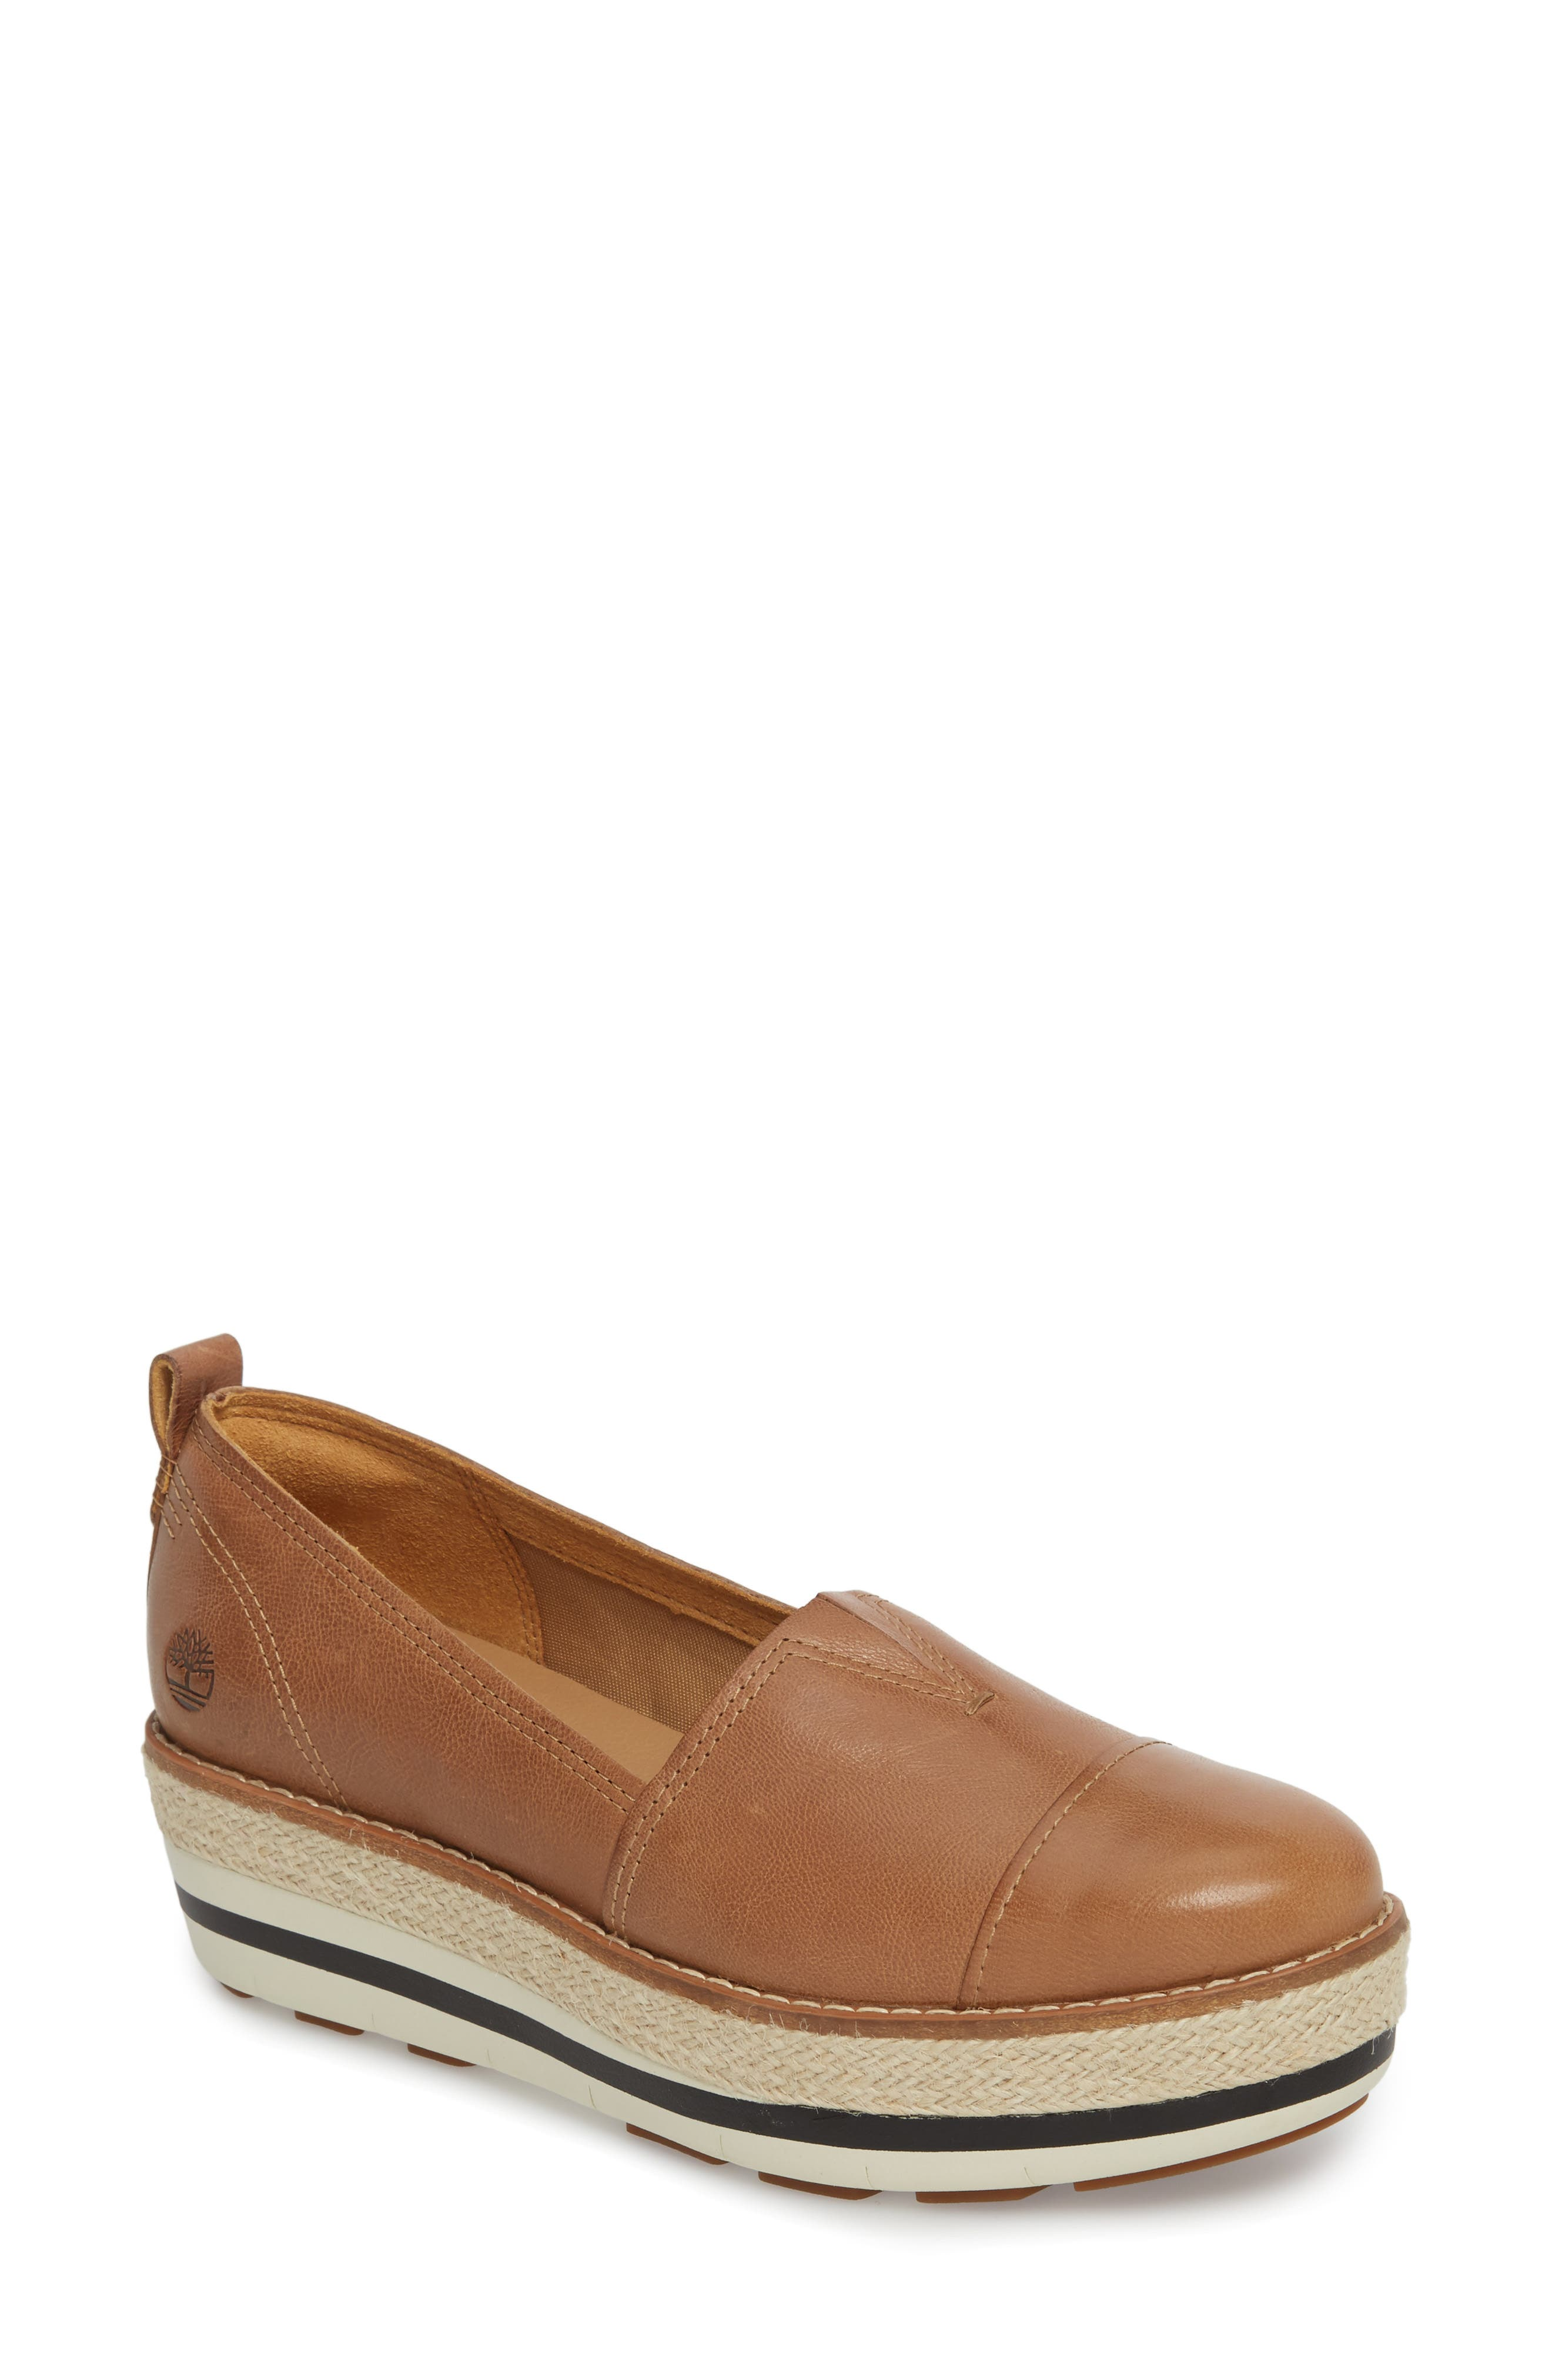 Emerson Platform Slip-On,                             Main thumbnail 1, color,                             Iced Coffee Leather